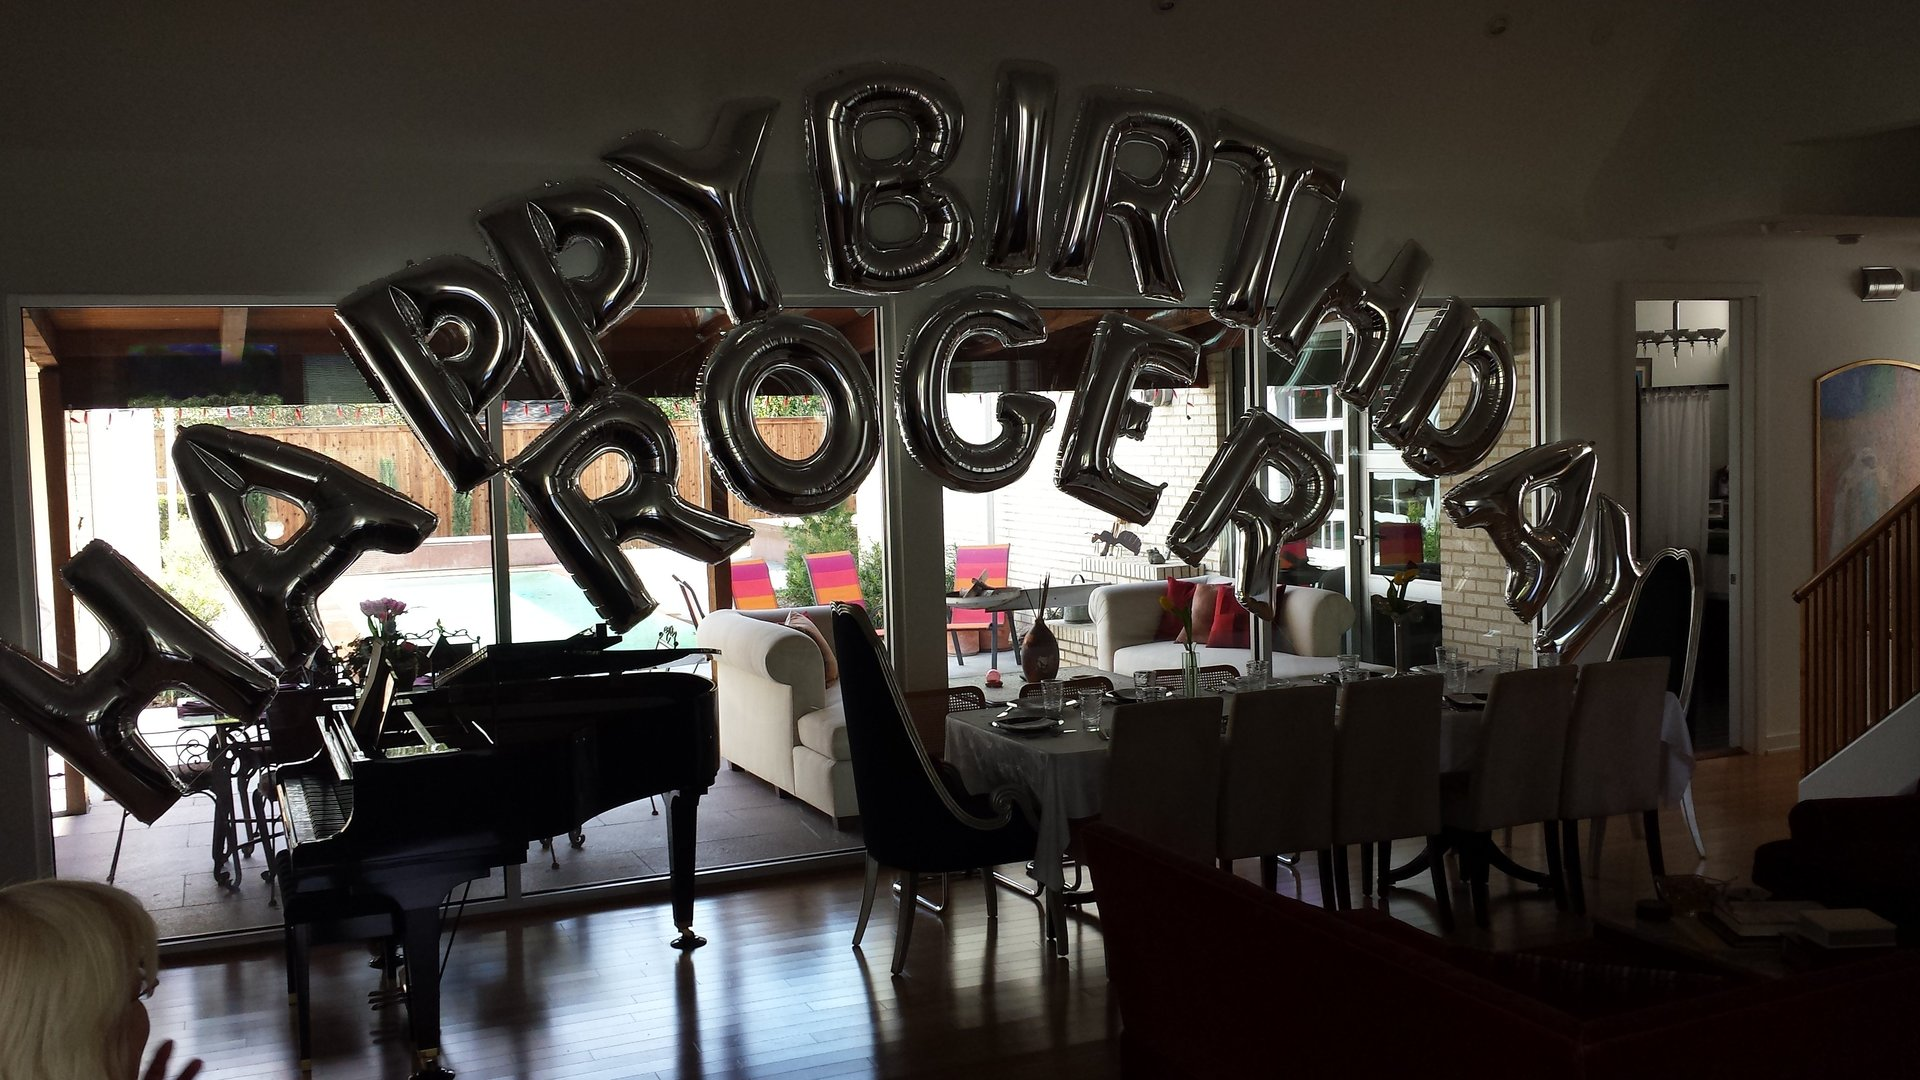 Roger's Birthday Party